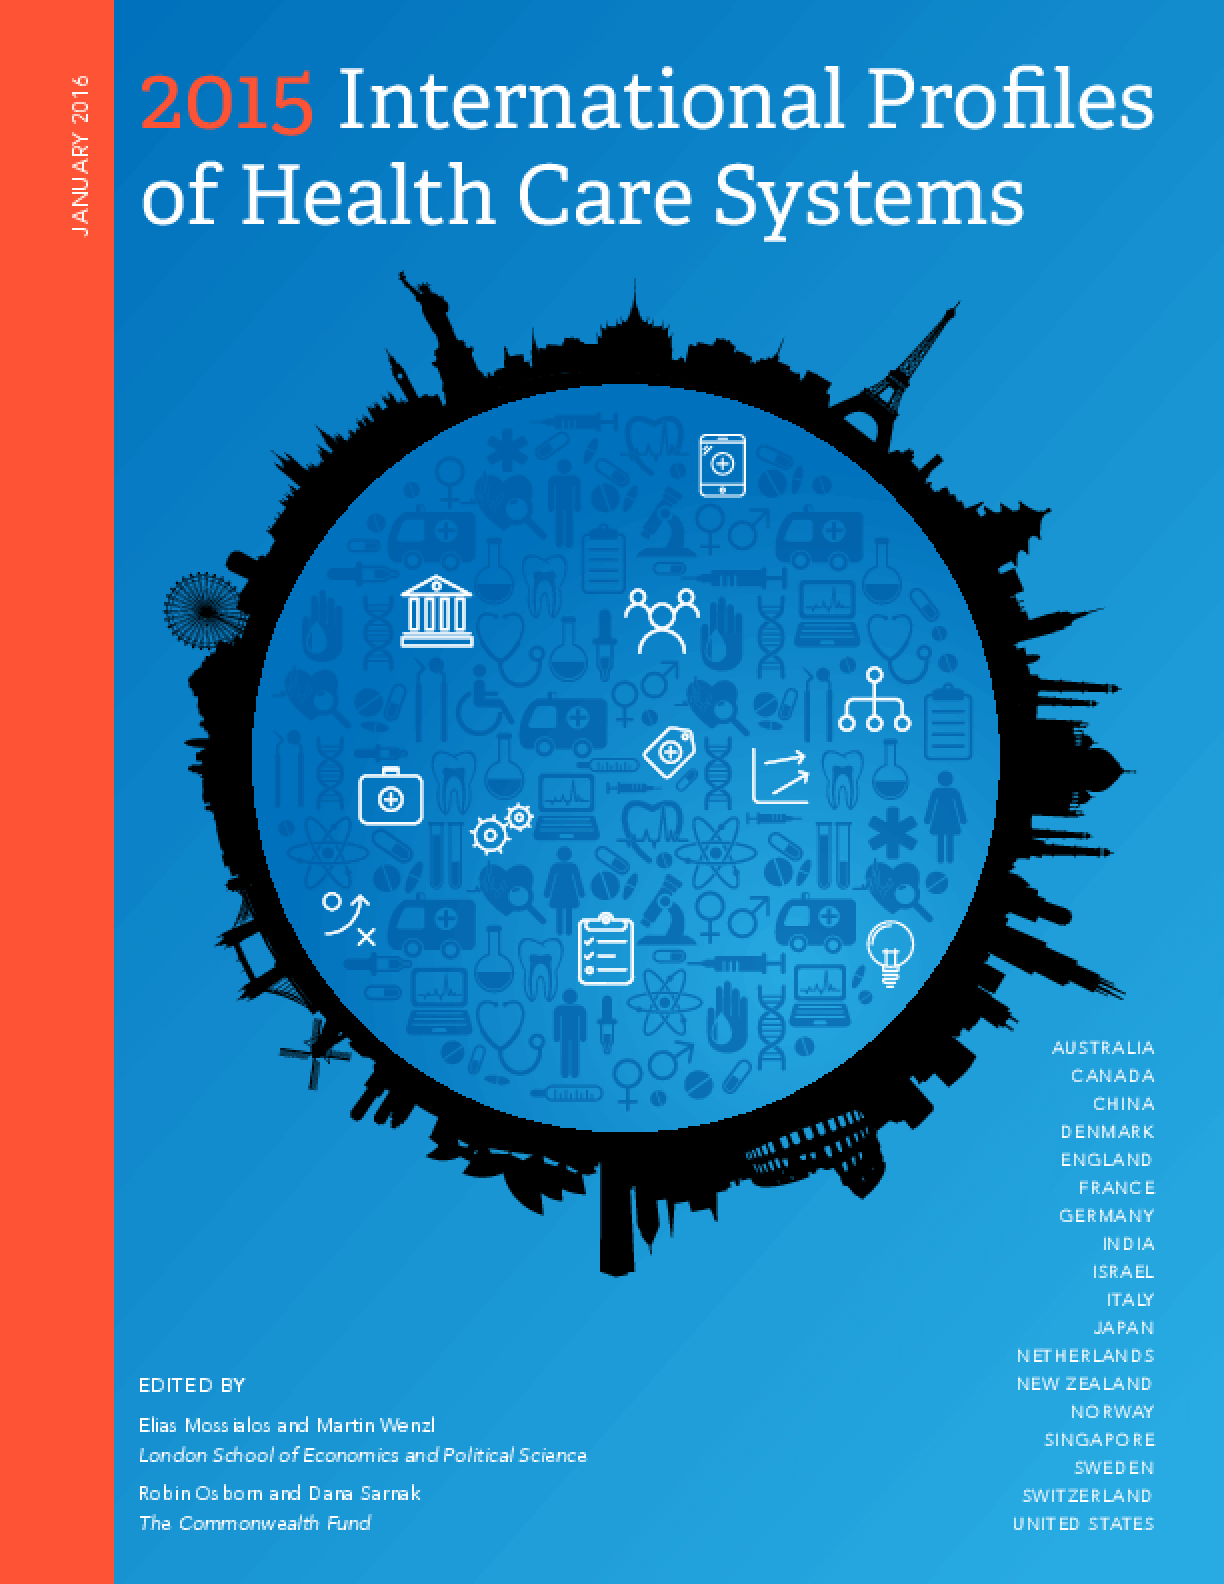 International Profiles of Health Care Systems, 2015